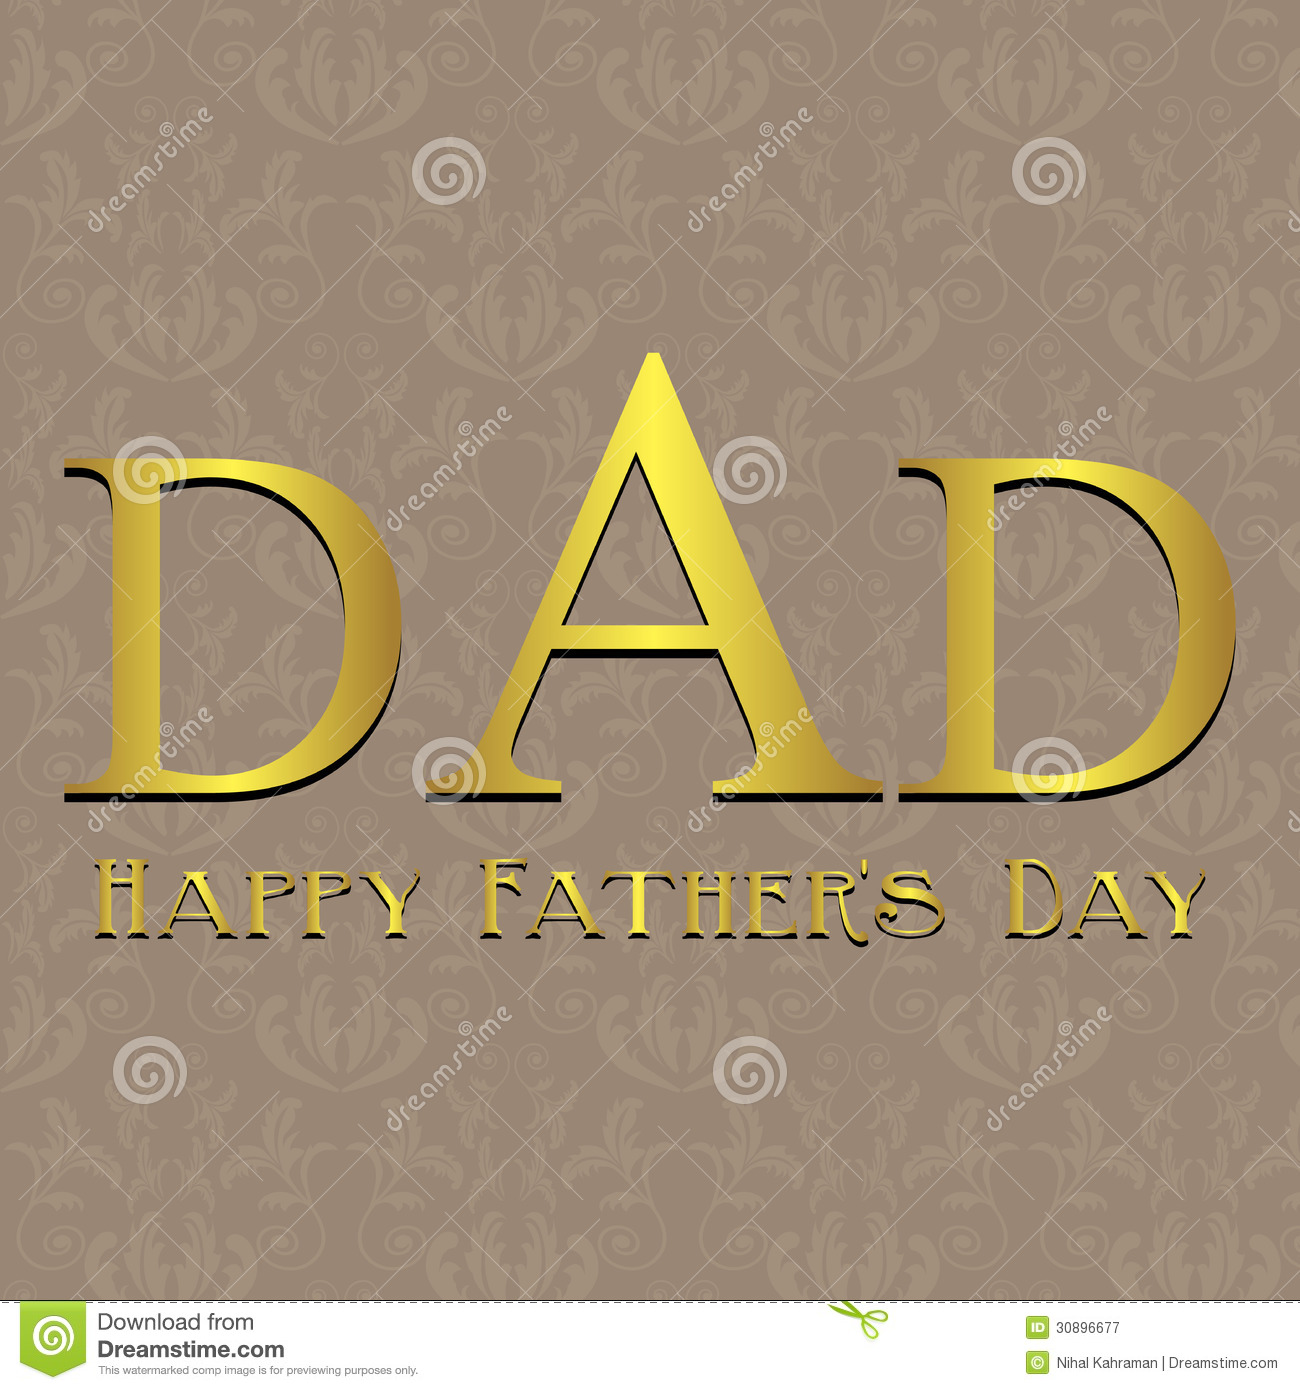 Fathers day card with blue black and white strip stock vector royalty free stock photo biocorpaavc Image collections